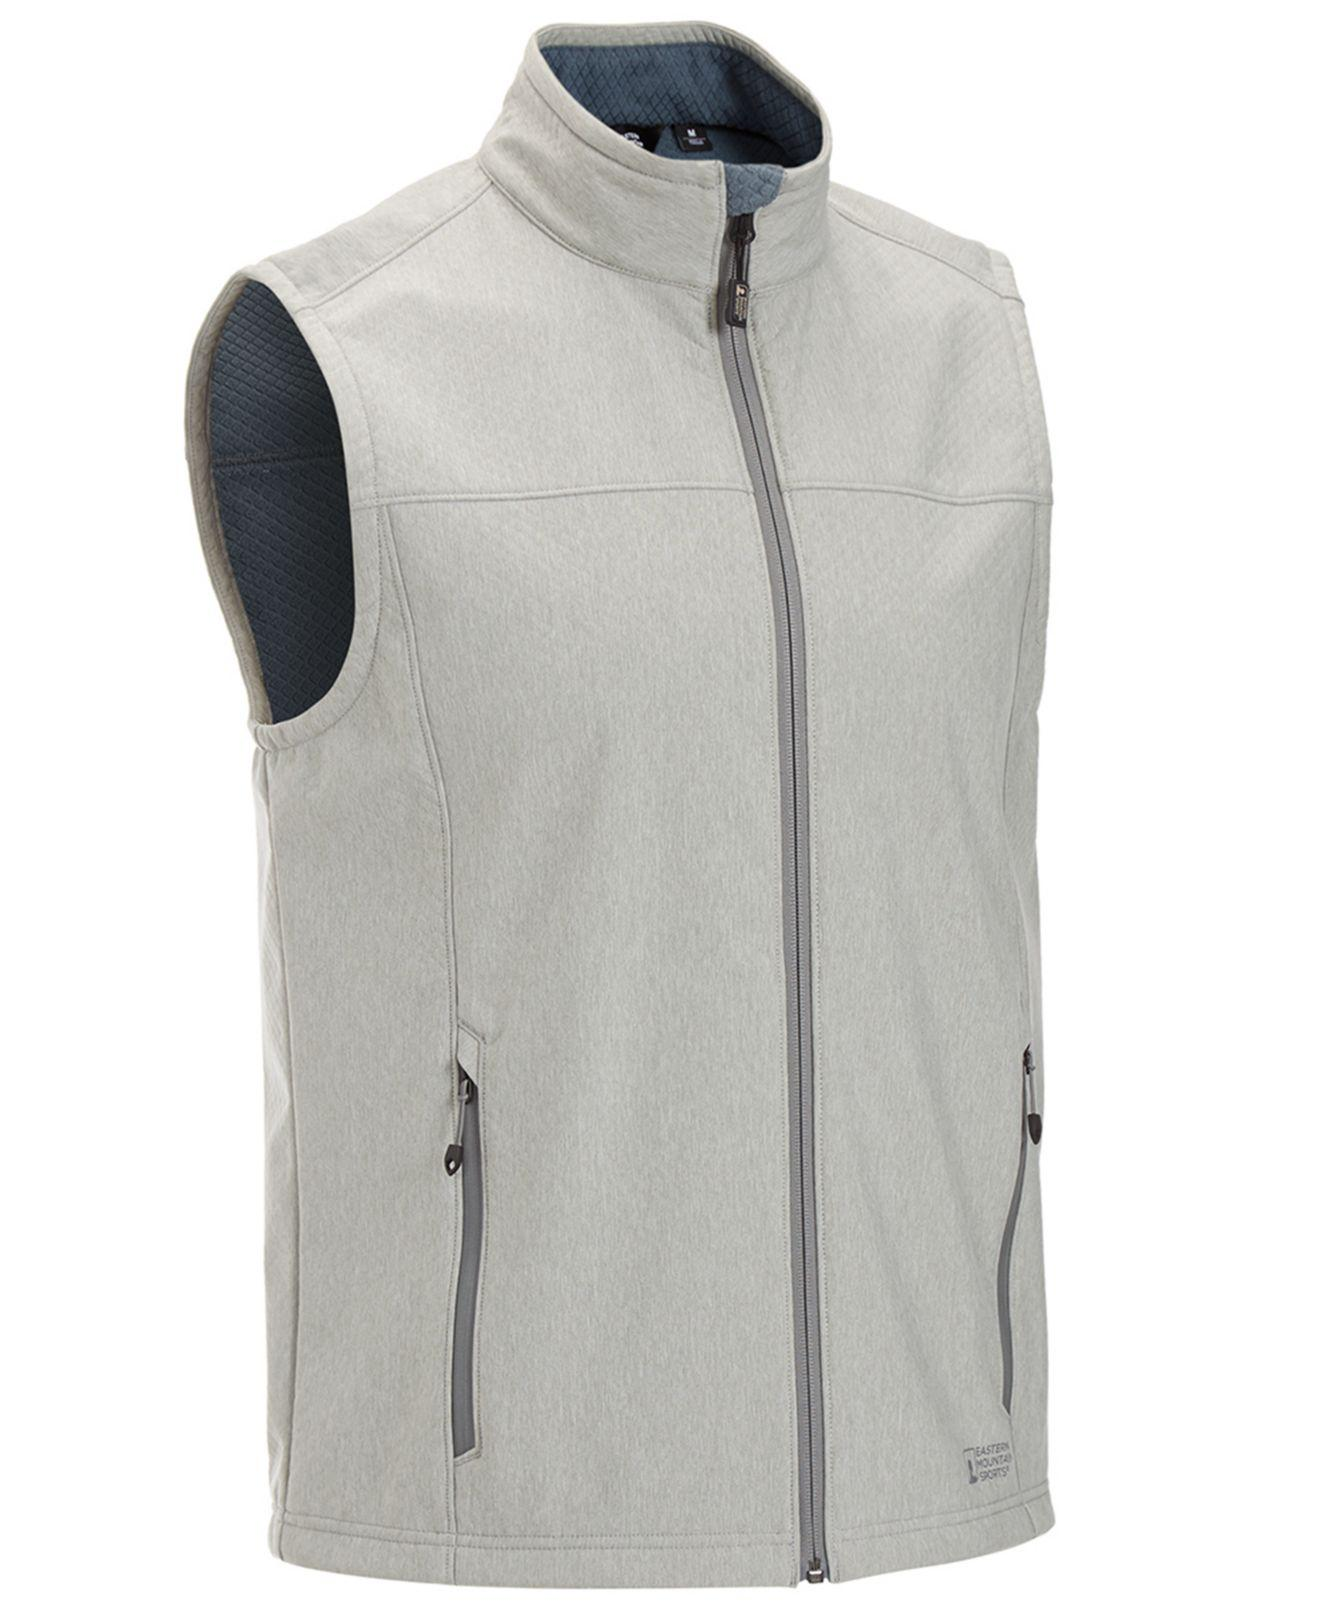 Lyst - Eastern Mountain Sports Rampart Soft-shell Full-zip Vest in ... a0abc888a